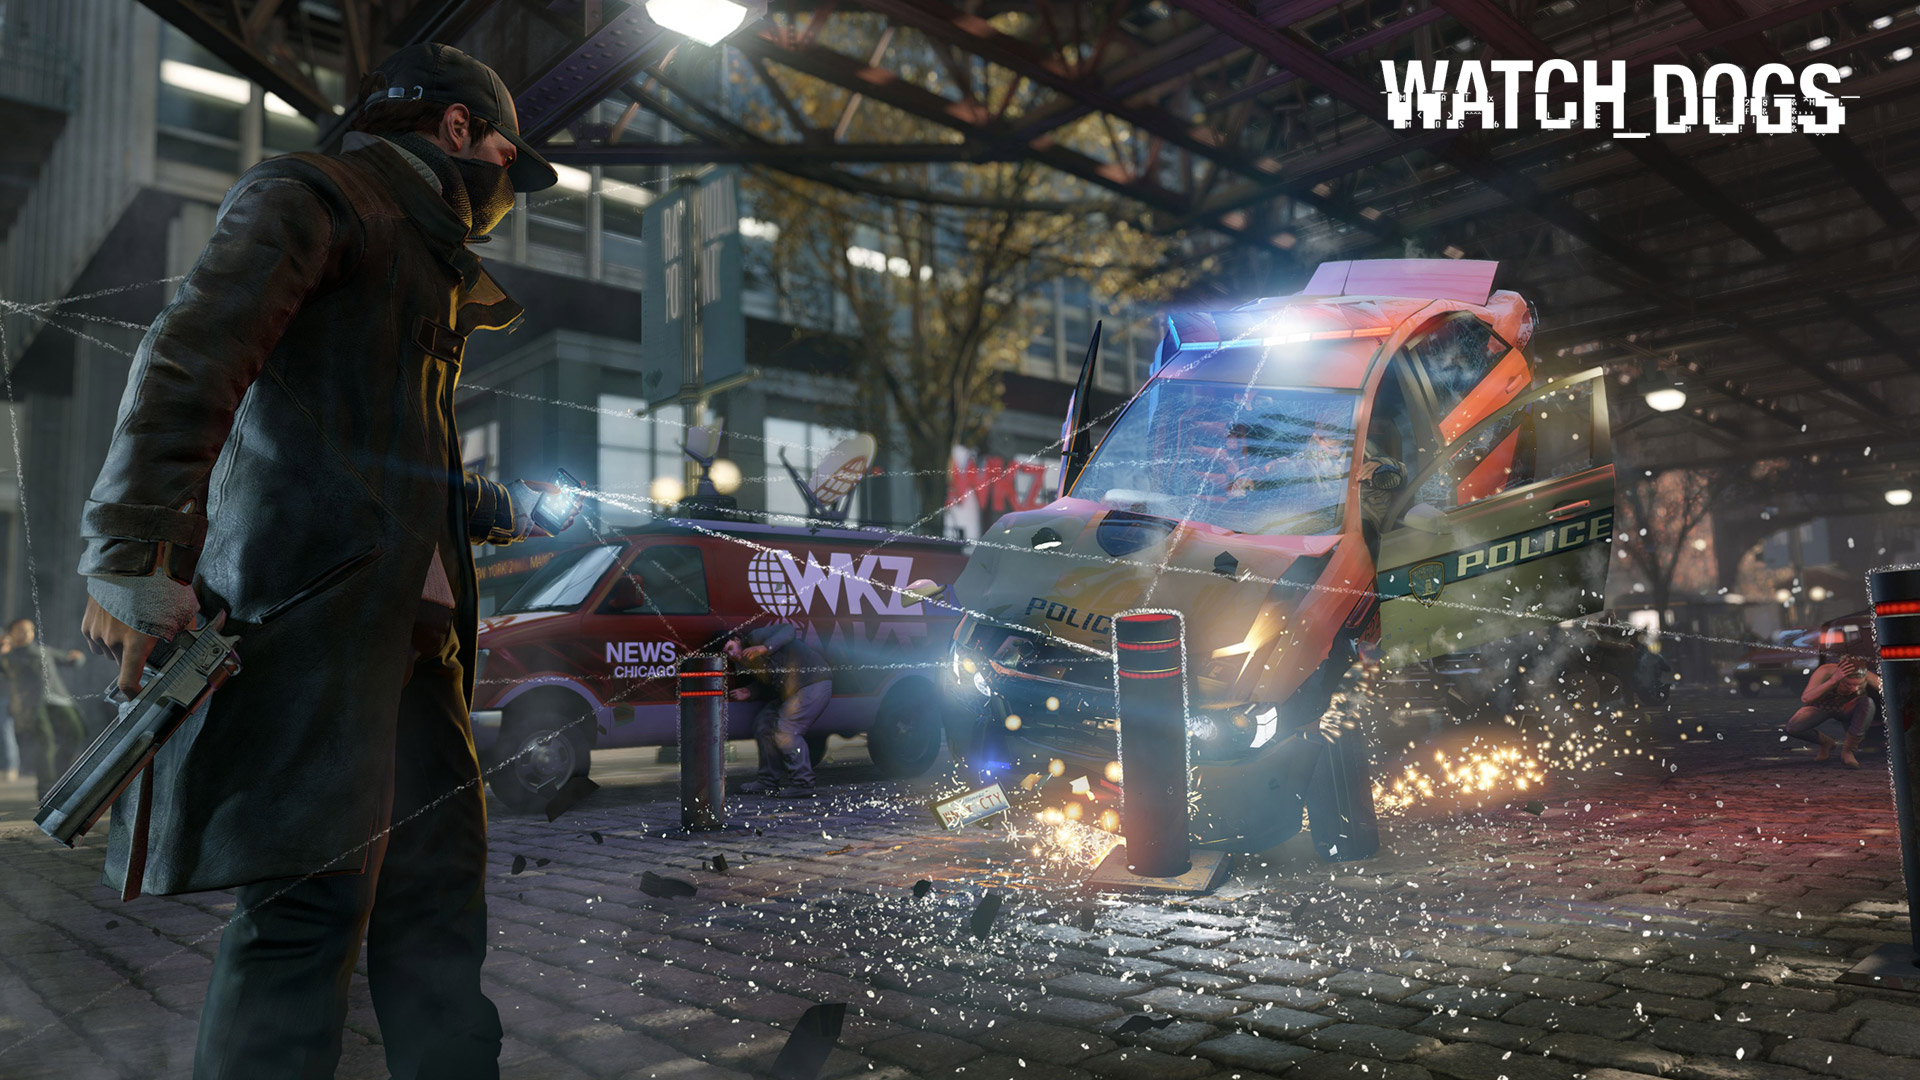 Watch Dogs wallpaper 4